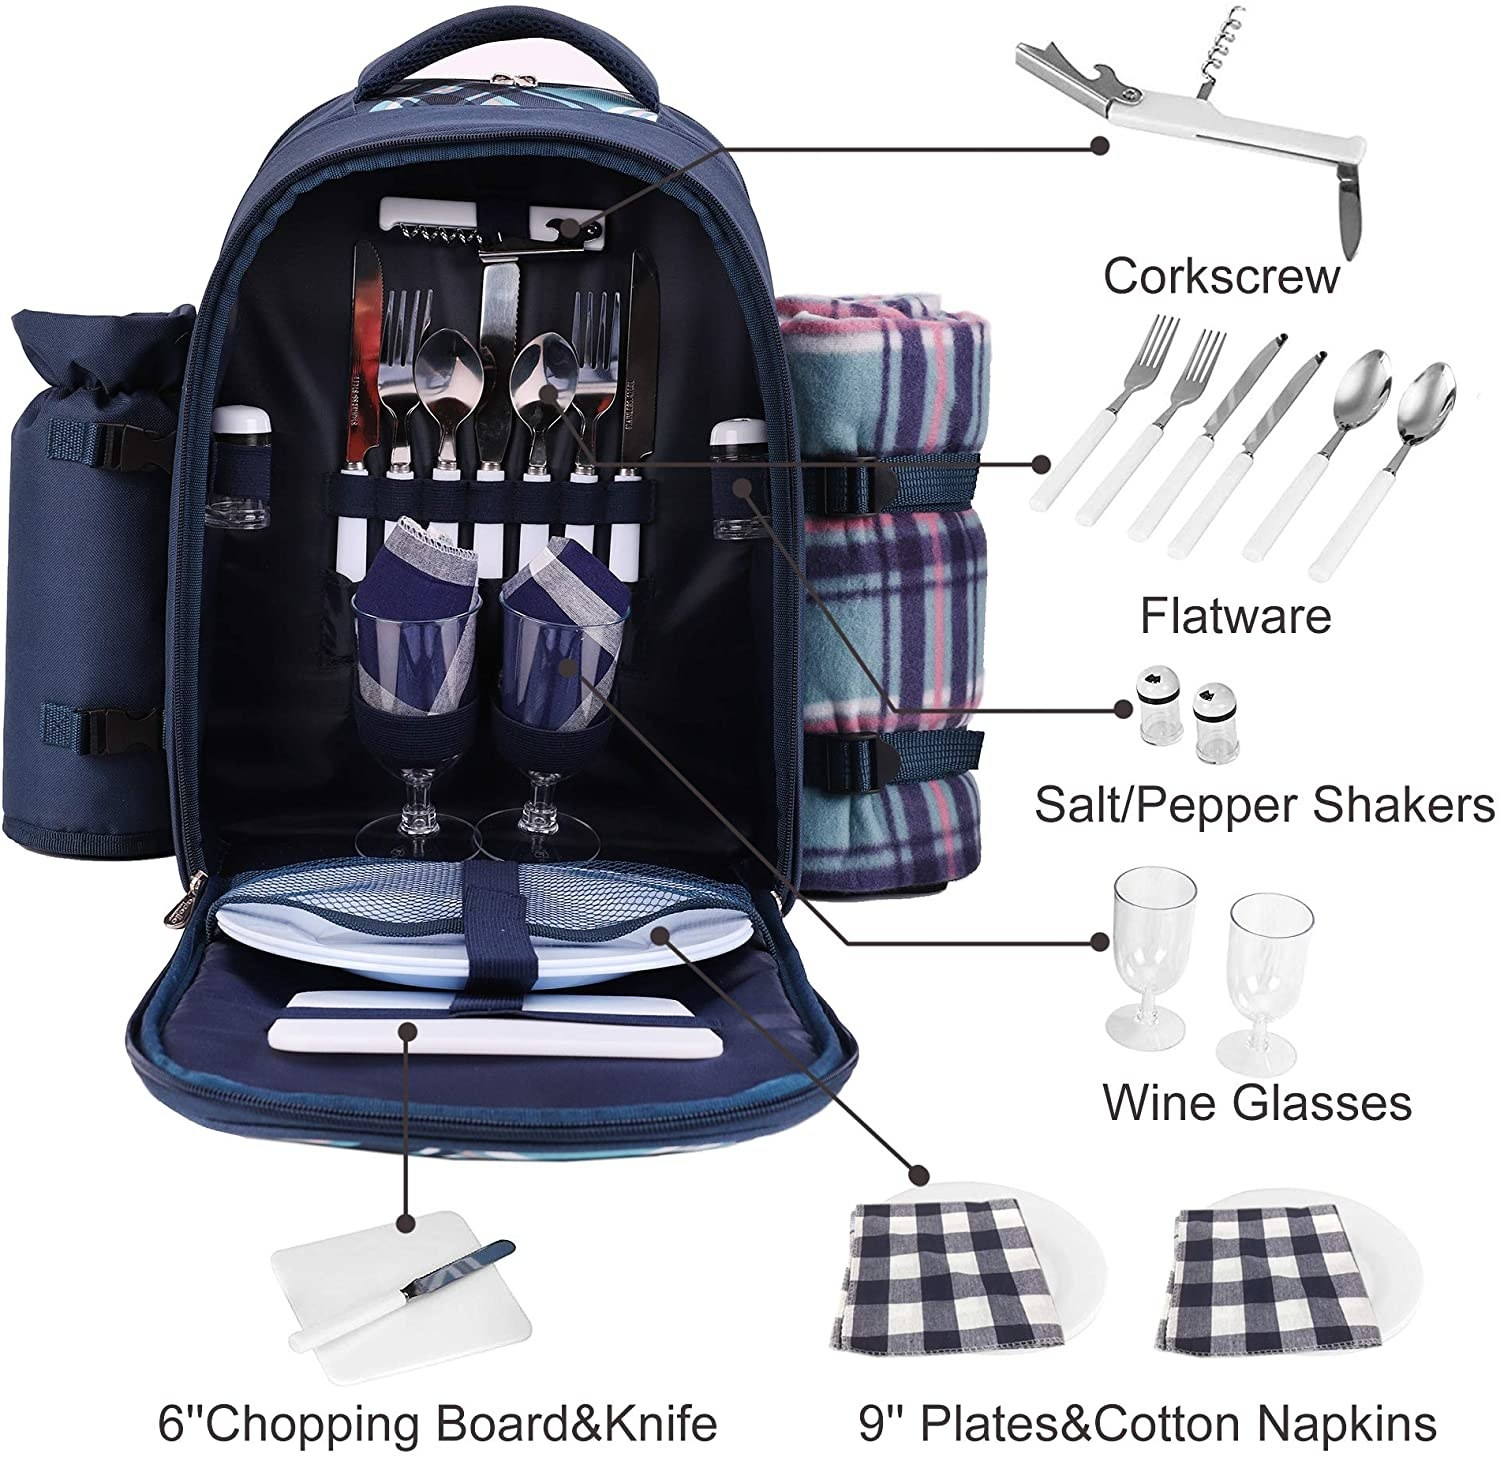 the open backpack with compartments for a variety of dining and eating items needed in a picnic